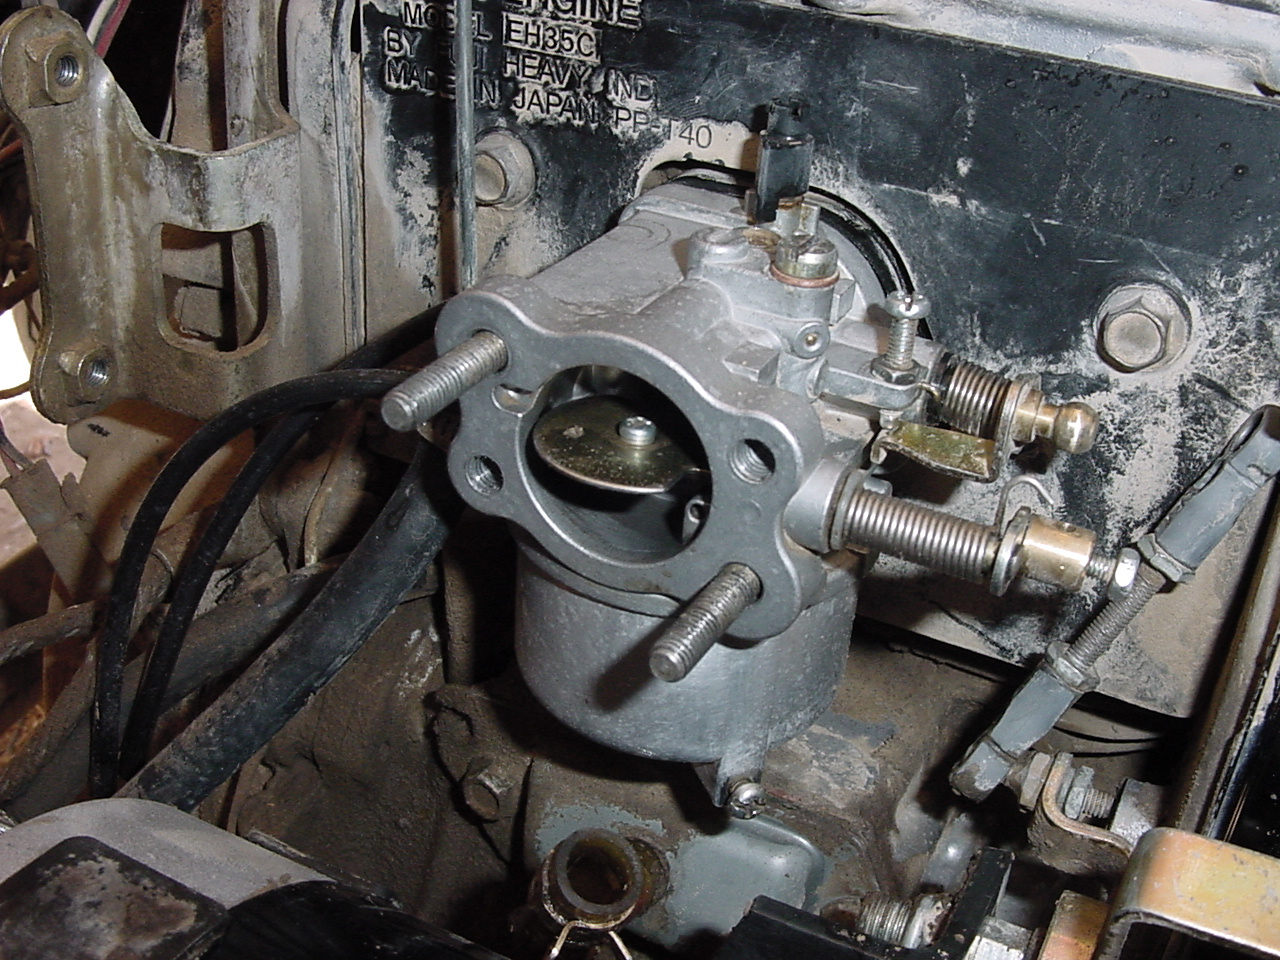 ez go textron gas wiring diagram horse gi i have a robins eh35 2 cyl engine and am having trouble